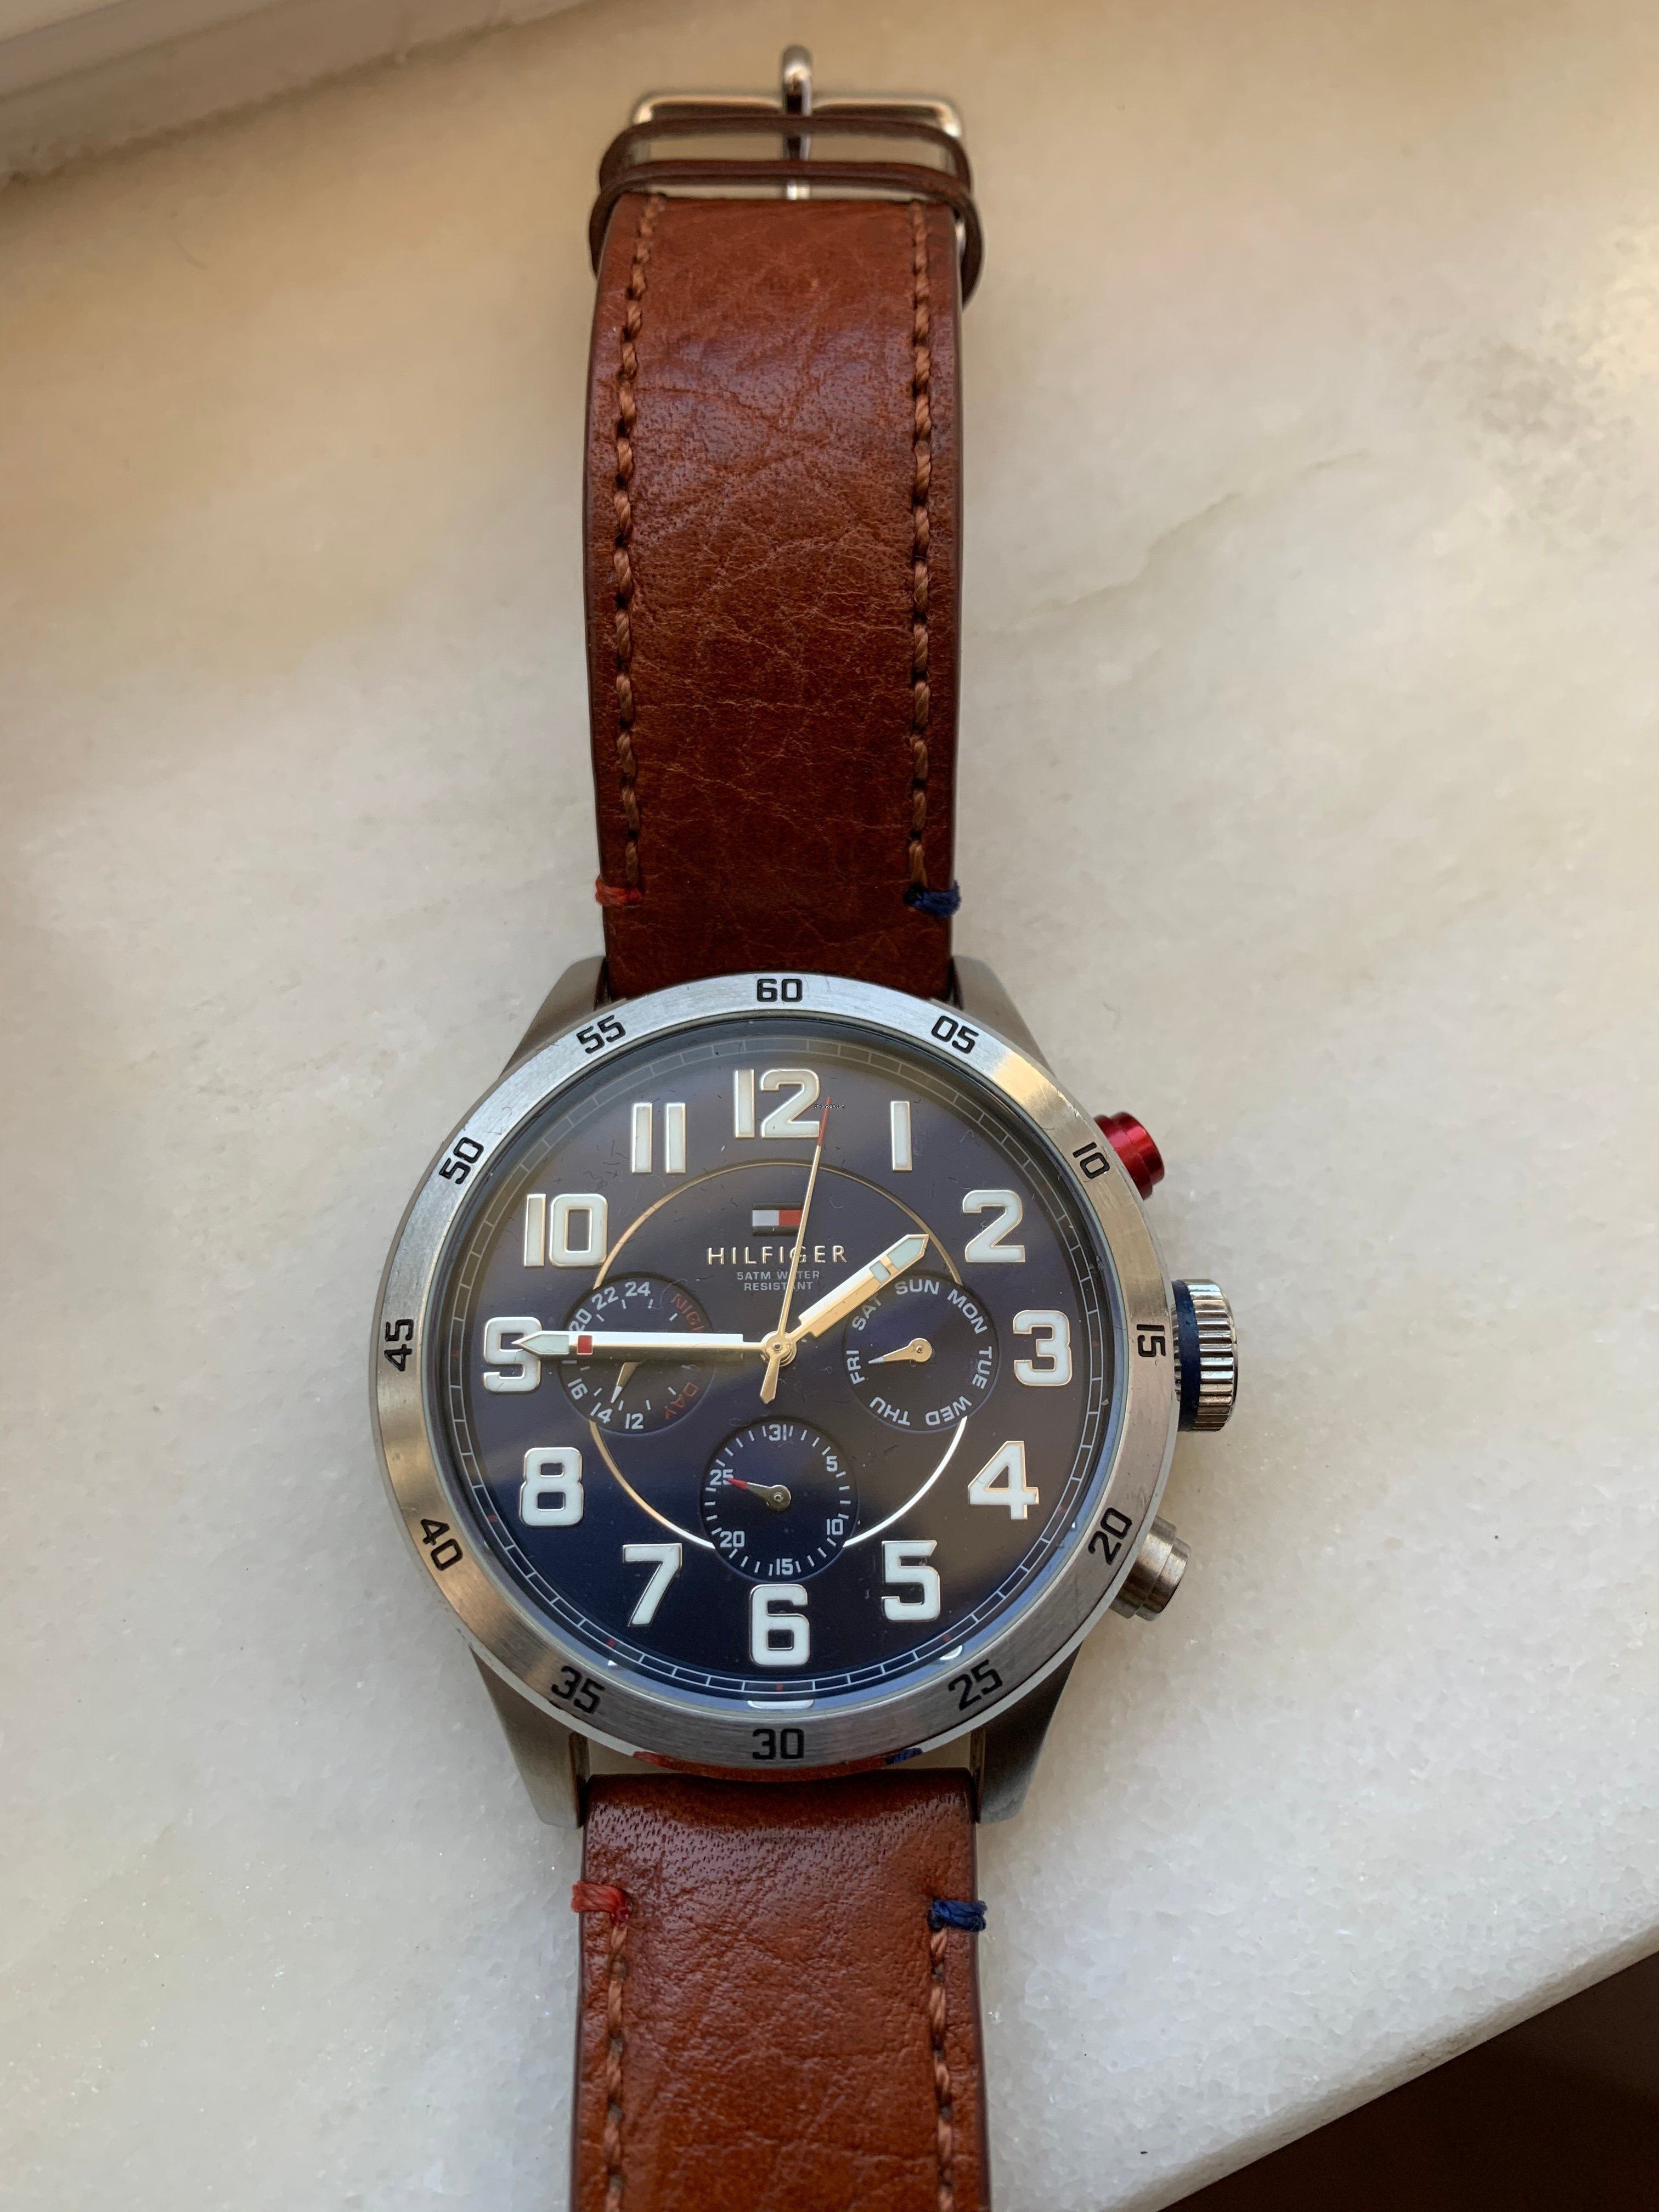 Gángster Oficiales Cósmico  Tommy Hilfiger Trent for $120 for sale from a Private Seller on Chrono24